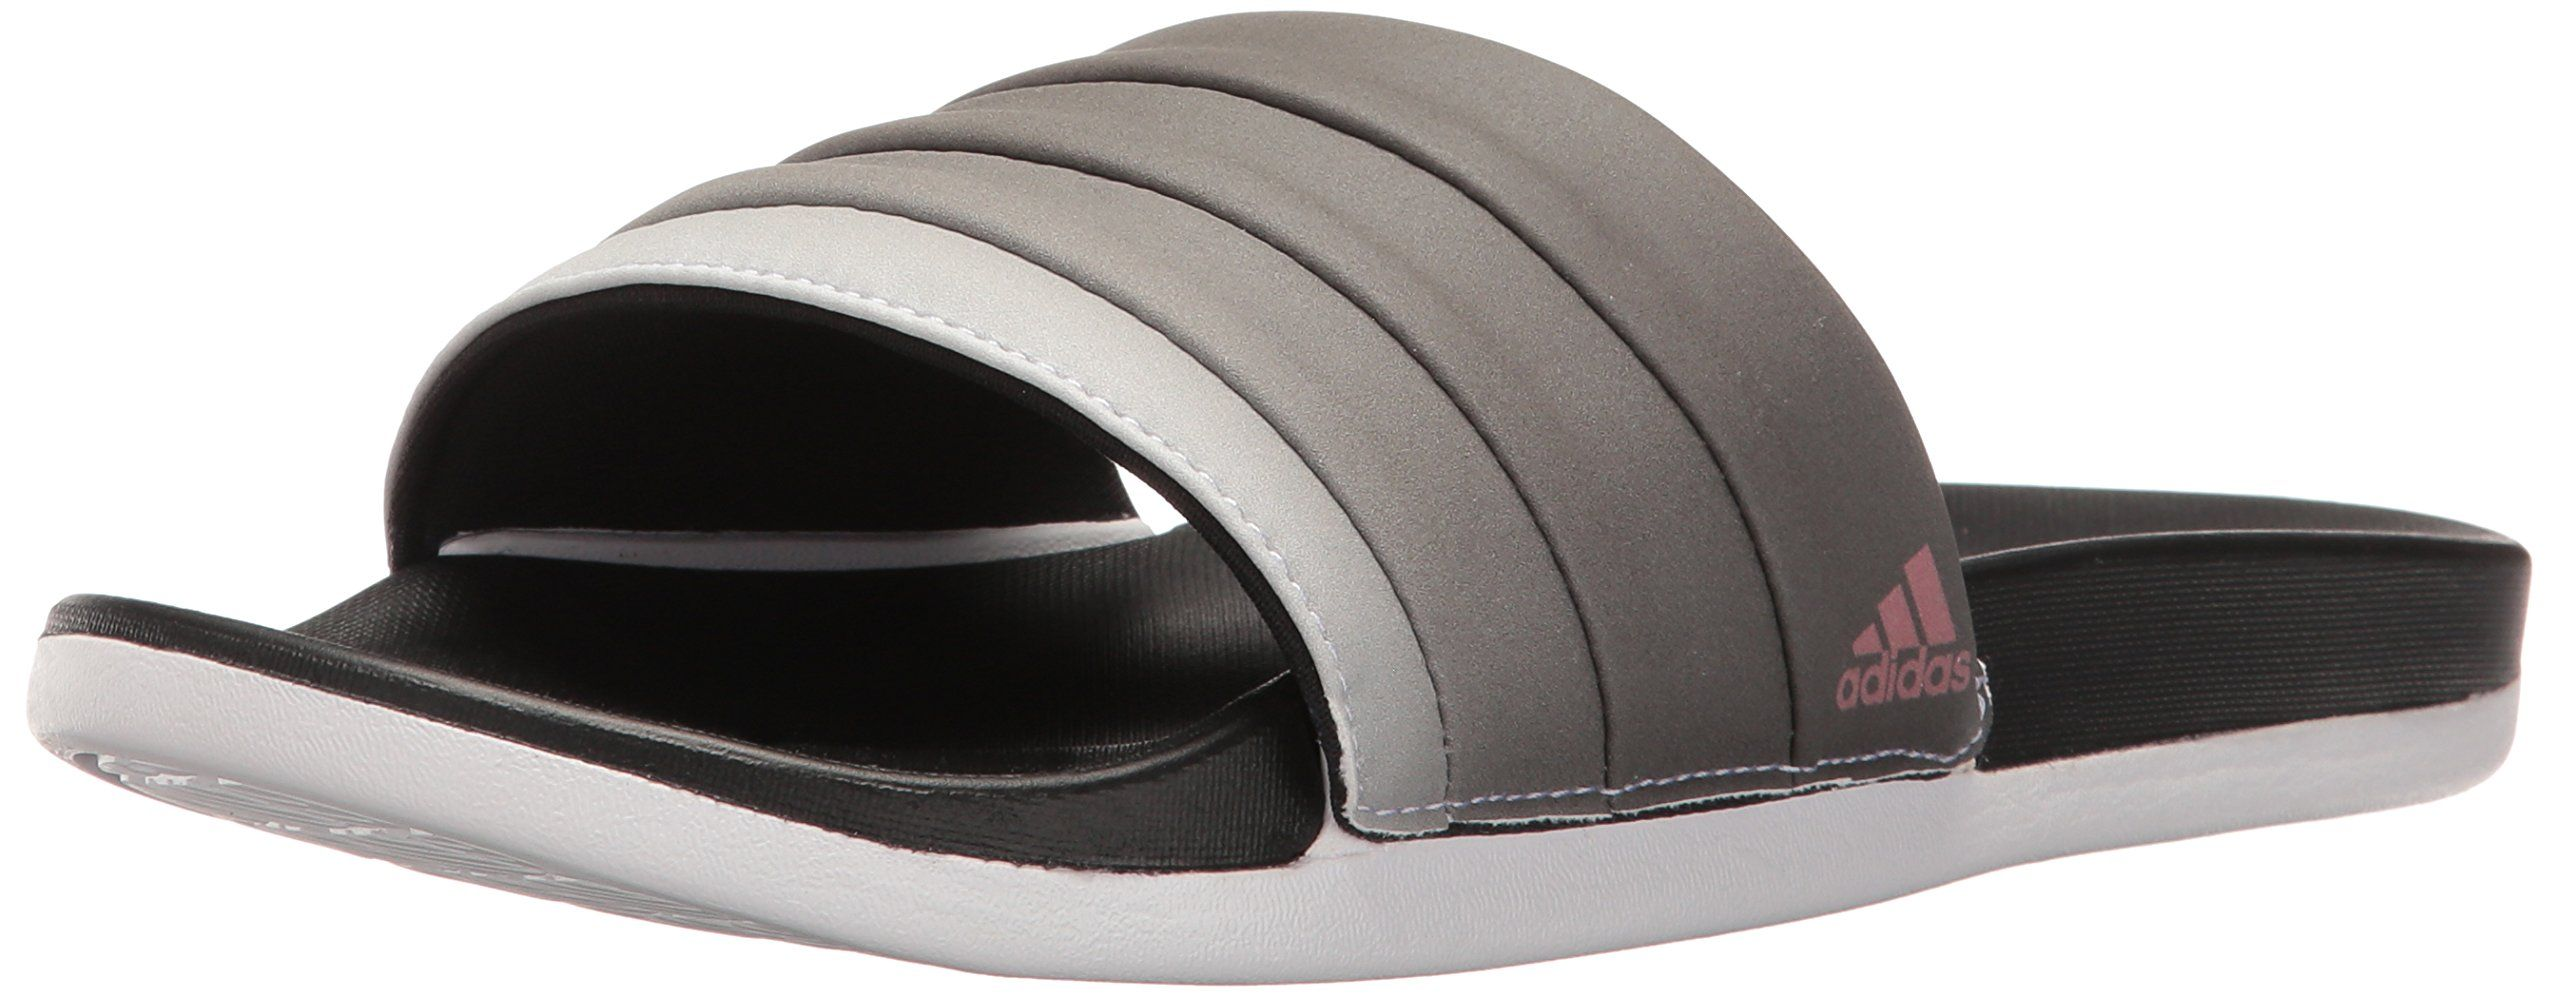 4910b5860f966 adidas Performance Womens Adilette CF Armad Athletic Slide Sandals Black Tech  Rust White 8 M US -- You can find more details by visiting the image link.